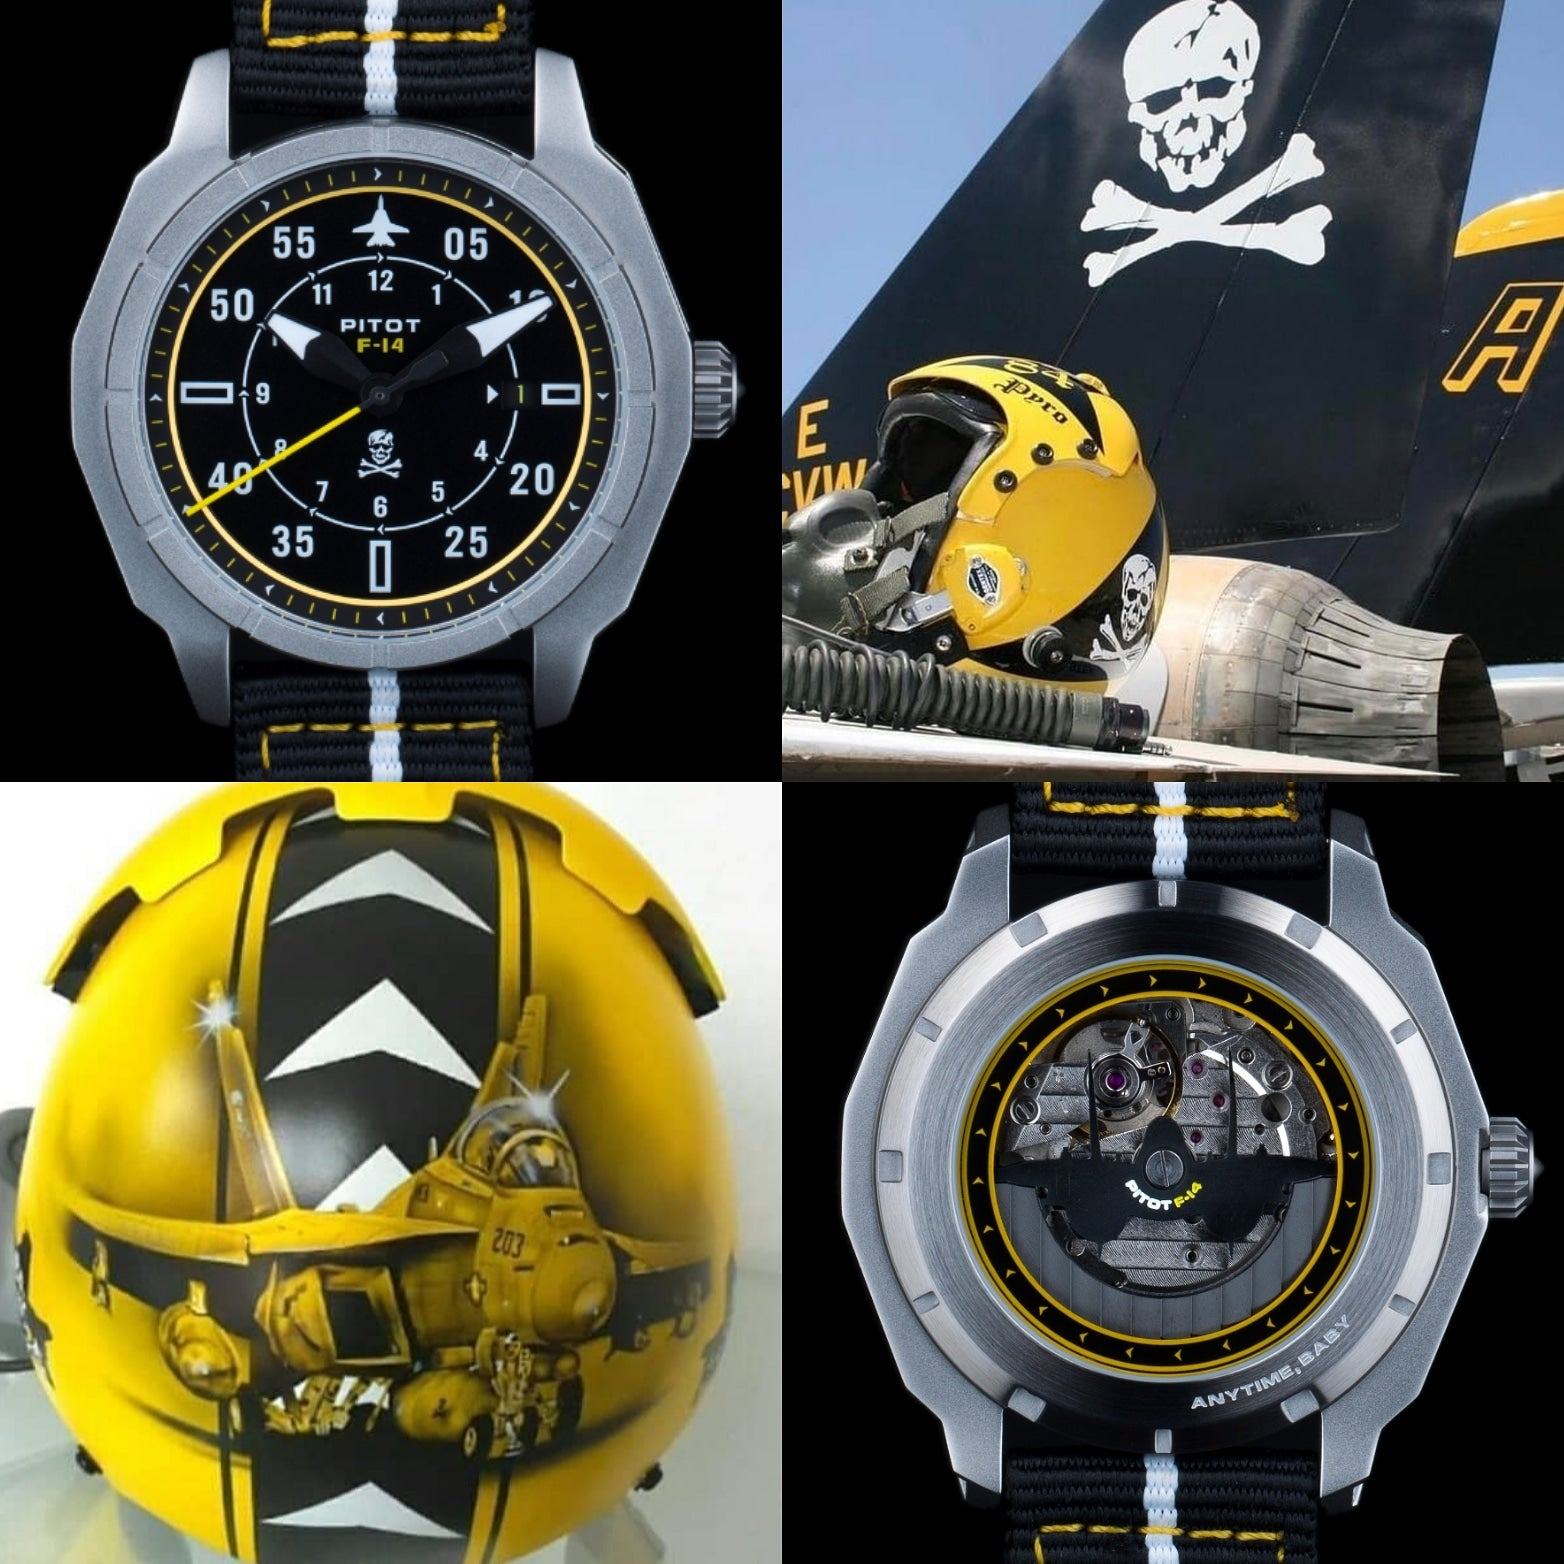 F-14 watch inspired by Jolly Rogers